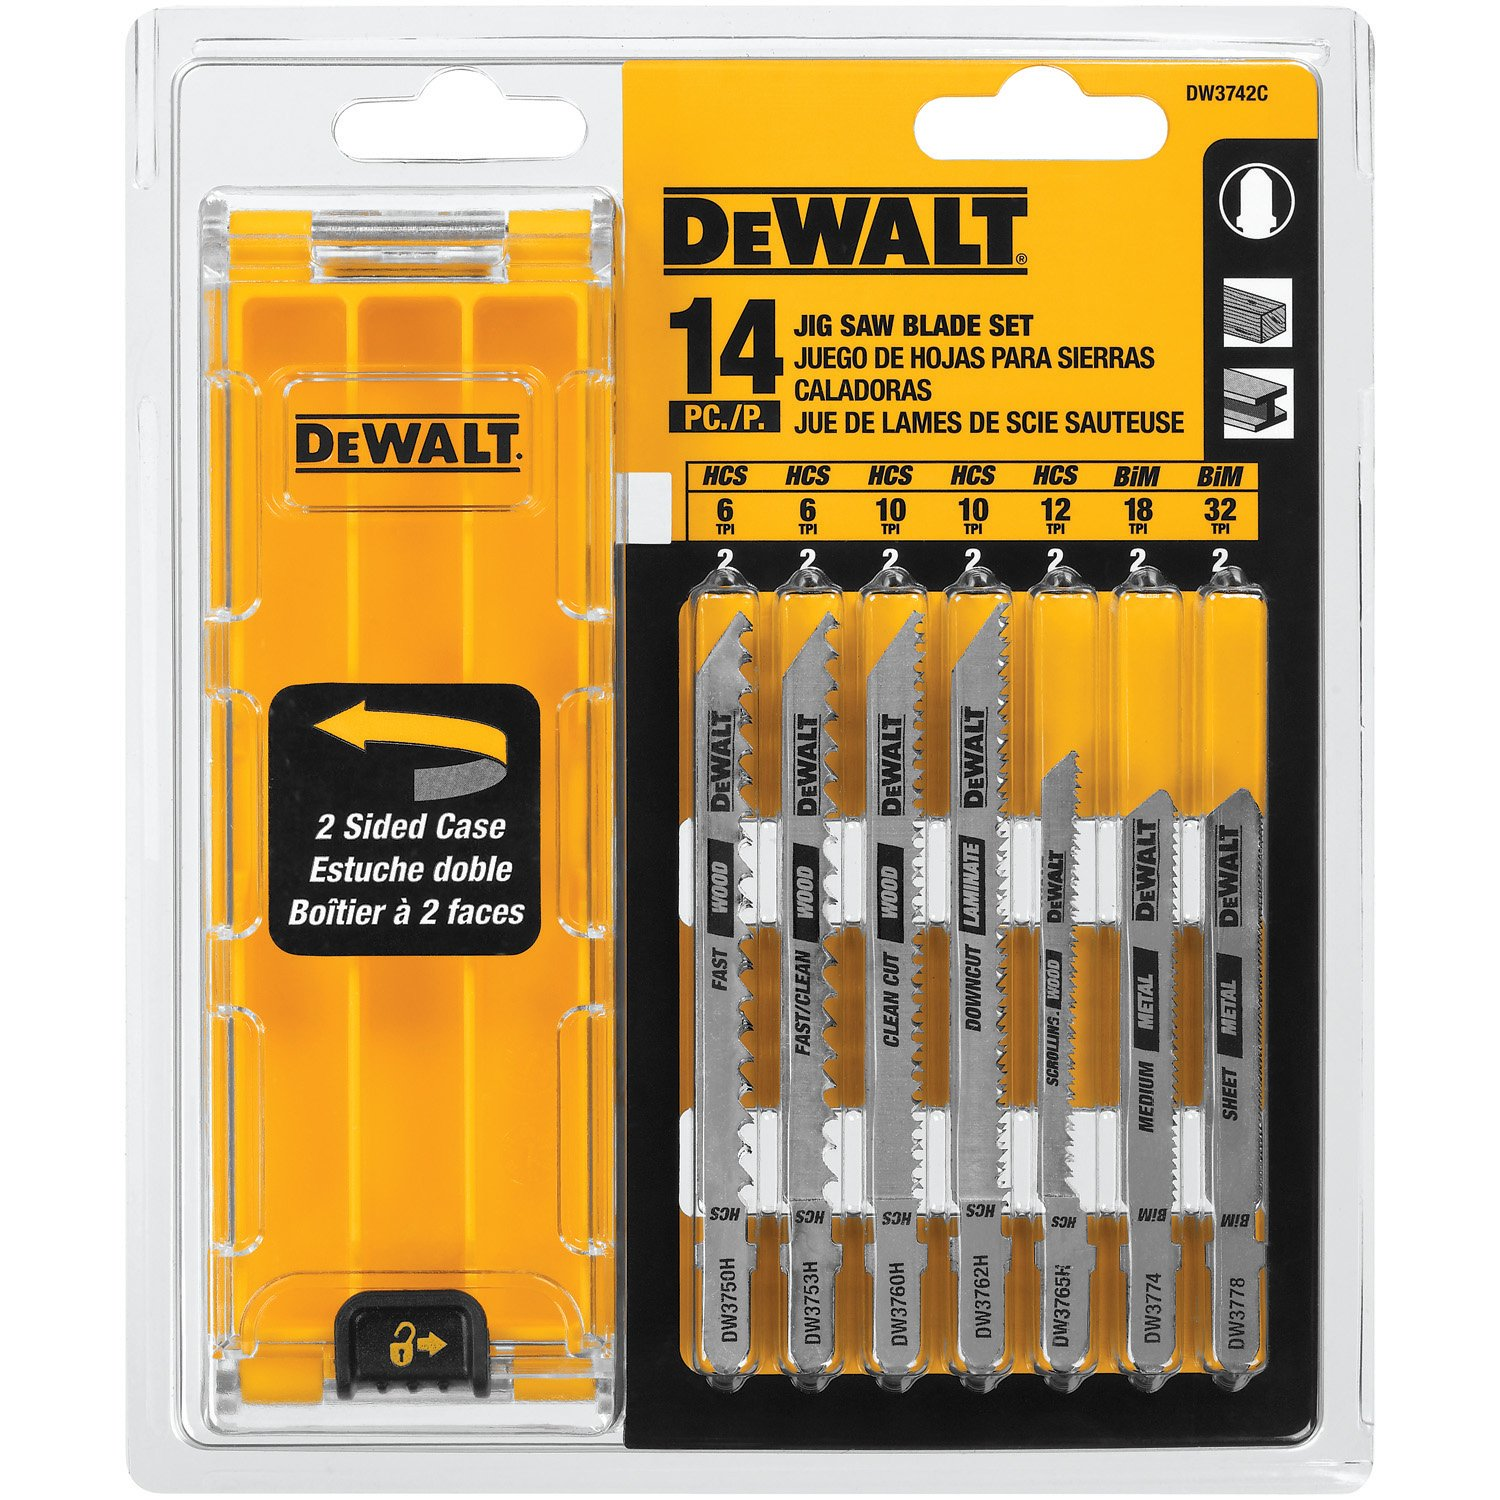 DEWALT DW3742C 14-Piece T-Shank Jig Saw Blade Set with Case